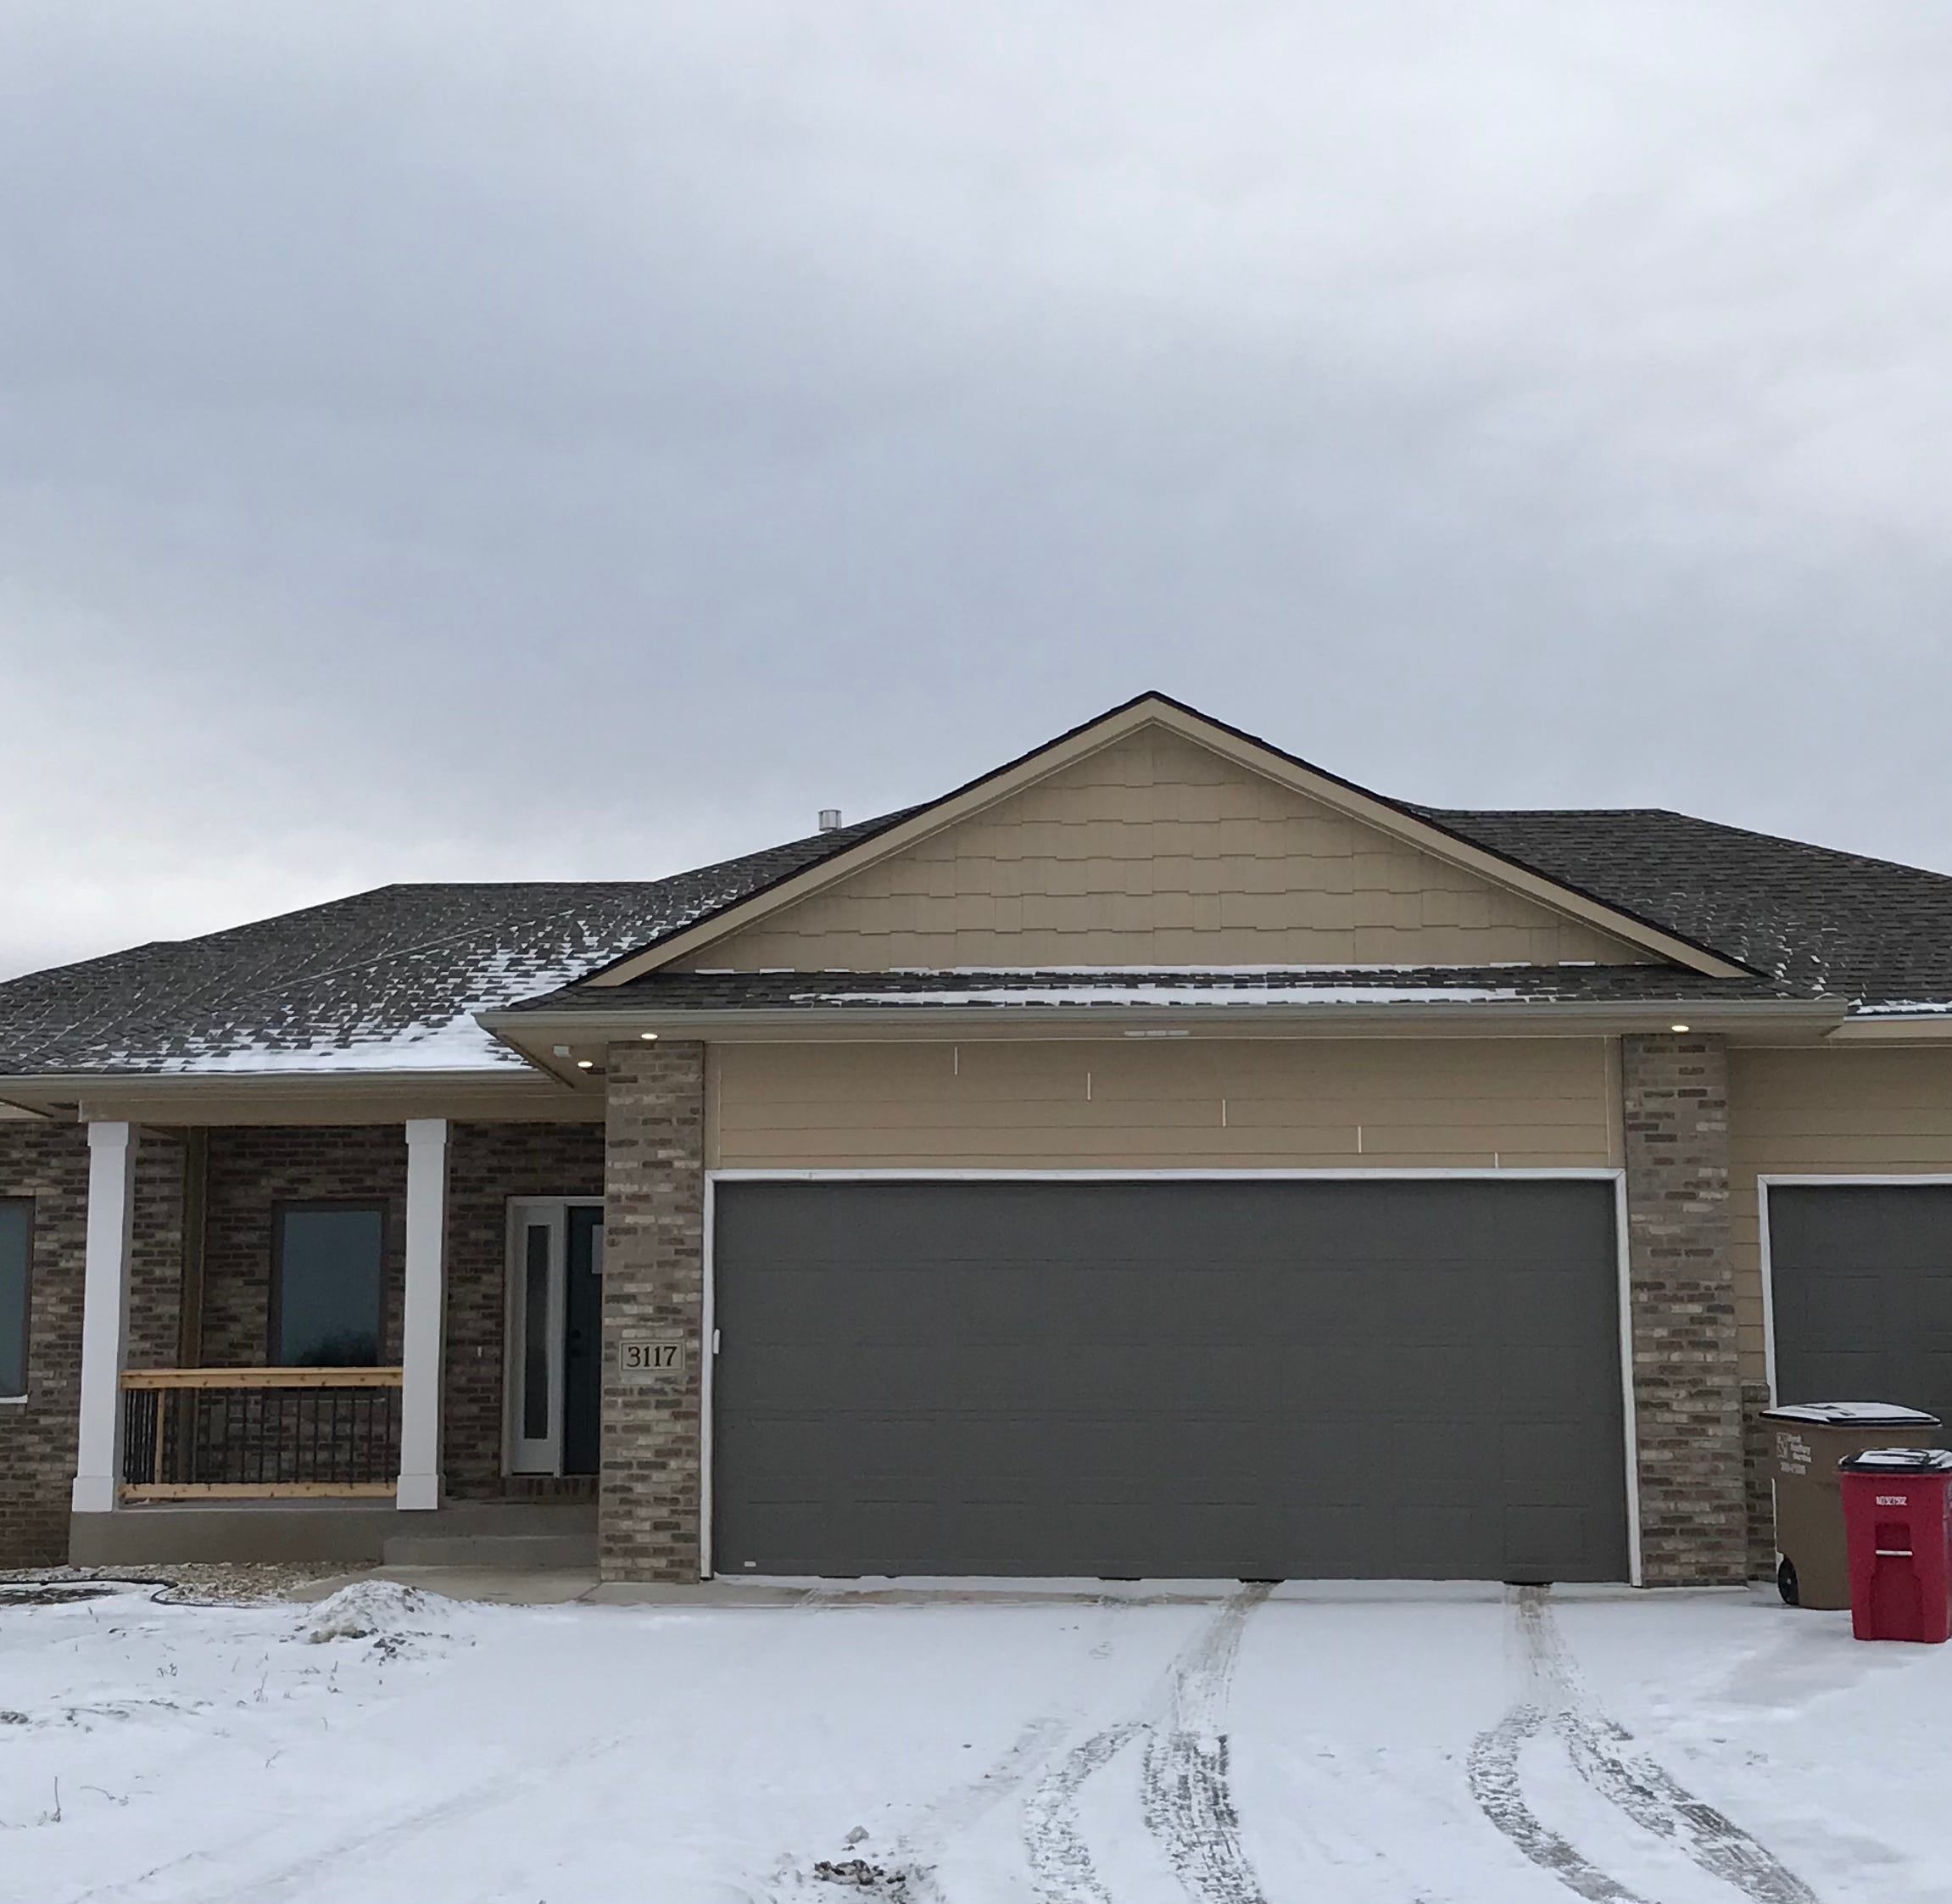 Copper Creek Heights home sells for $445,000, tops home sales report